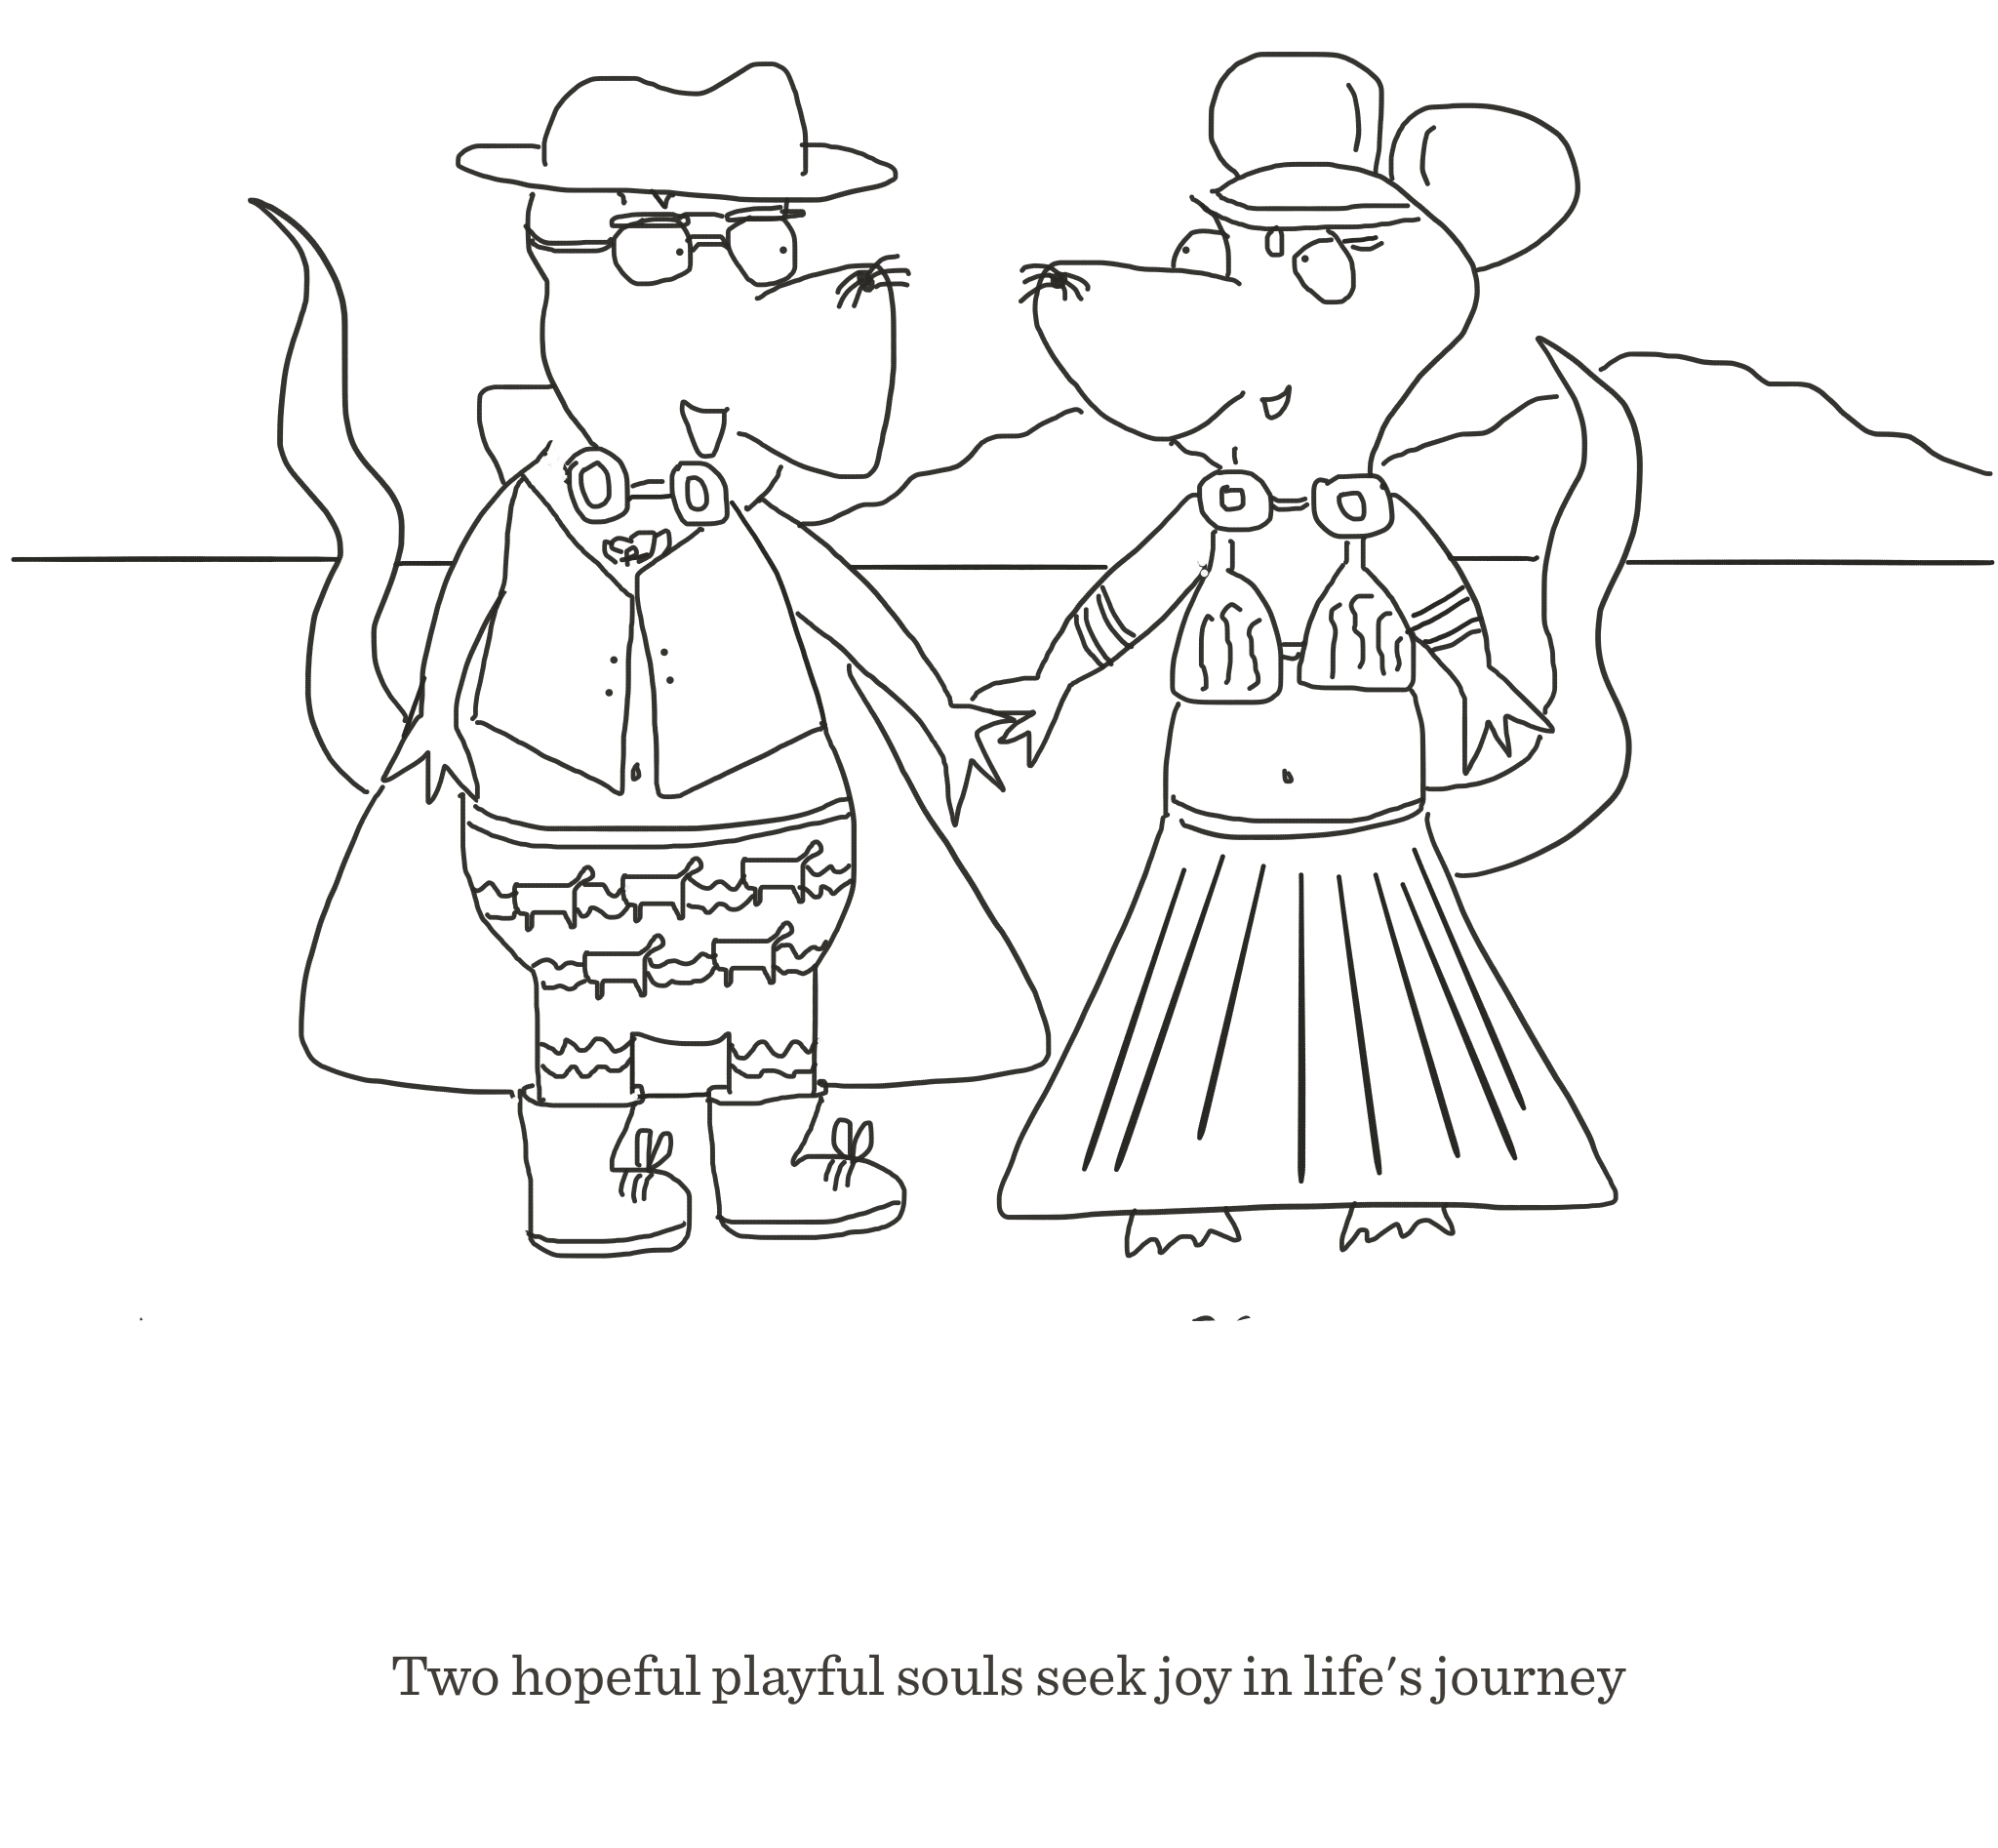 Hopeful playful souls, The Happy Rat cartoon